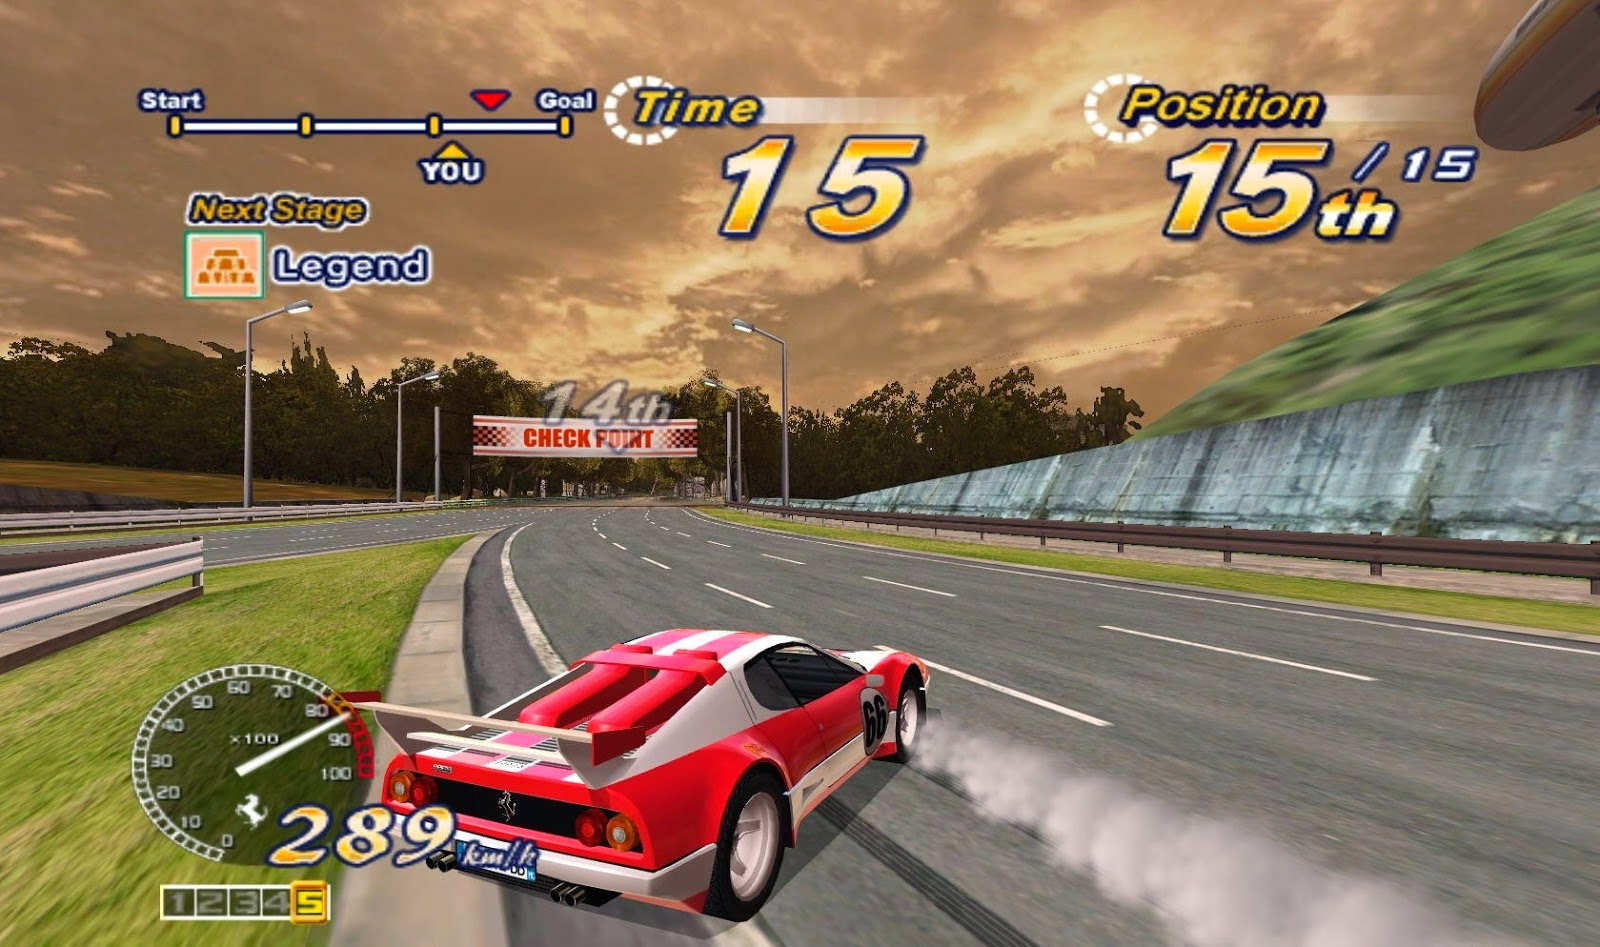 Outrun 2006 Coast 2 Coast Game - Free Download Full Version